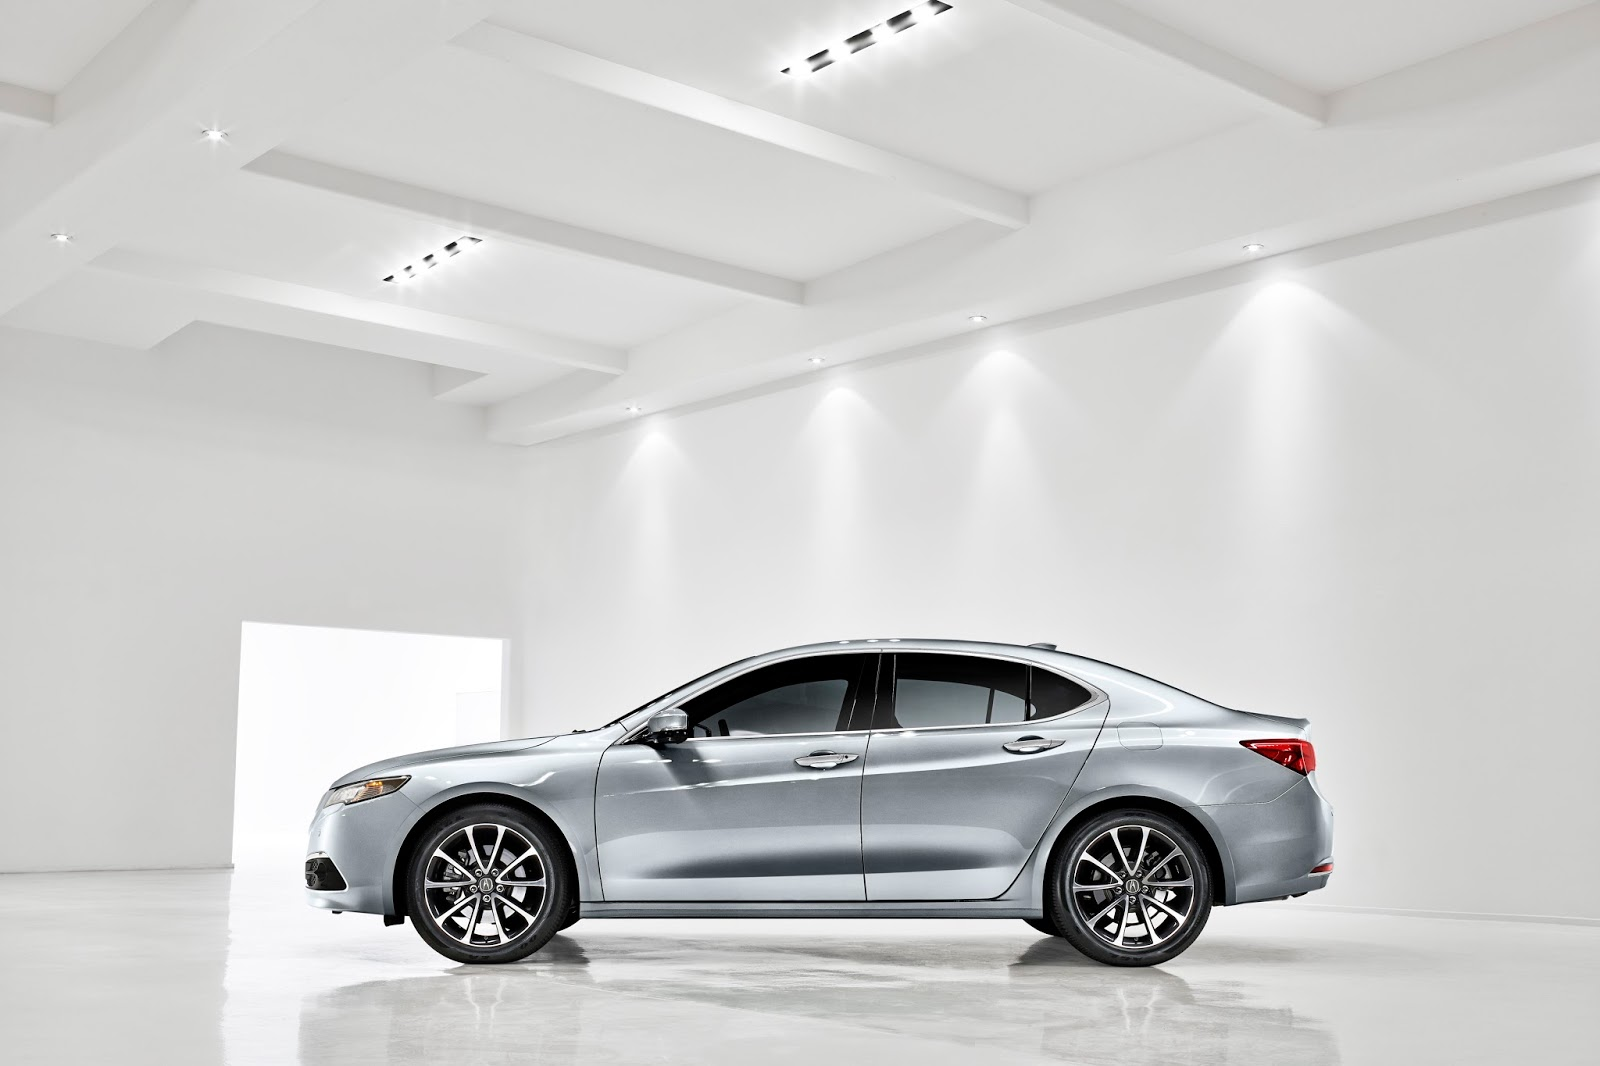 2014 - [Acura] TLX - Page 2 Acura-2015-TLX-1